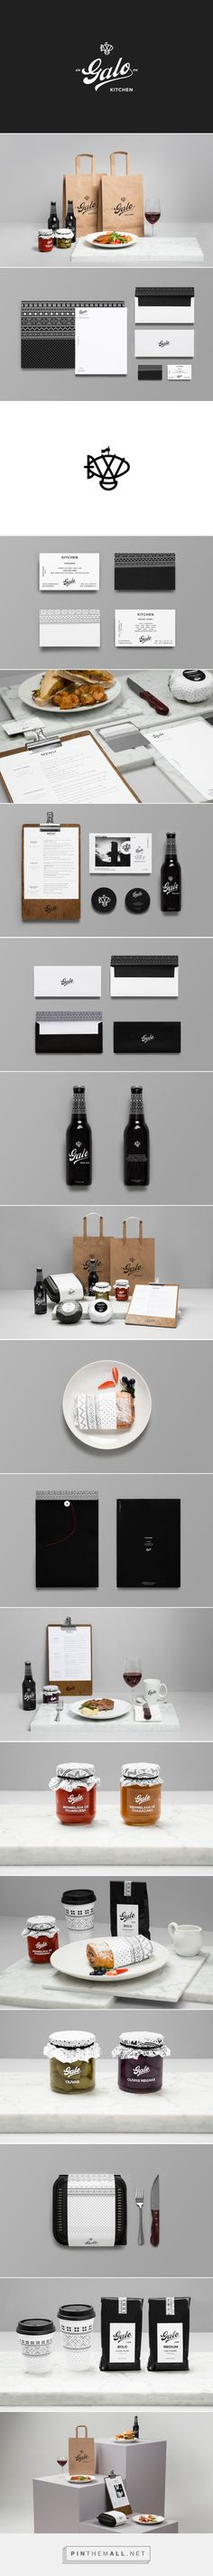 I am loving this! Great branding and in line with what we doing Food Branding, Food Packaging Design, Logo Food, Brand Packaging, Branding Ideas, Corporate Style, Corporate Design, Corporate Identity, Visual Identity